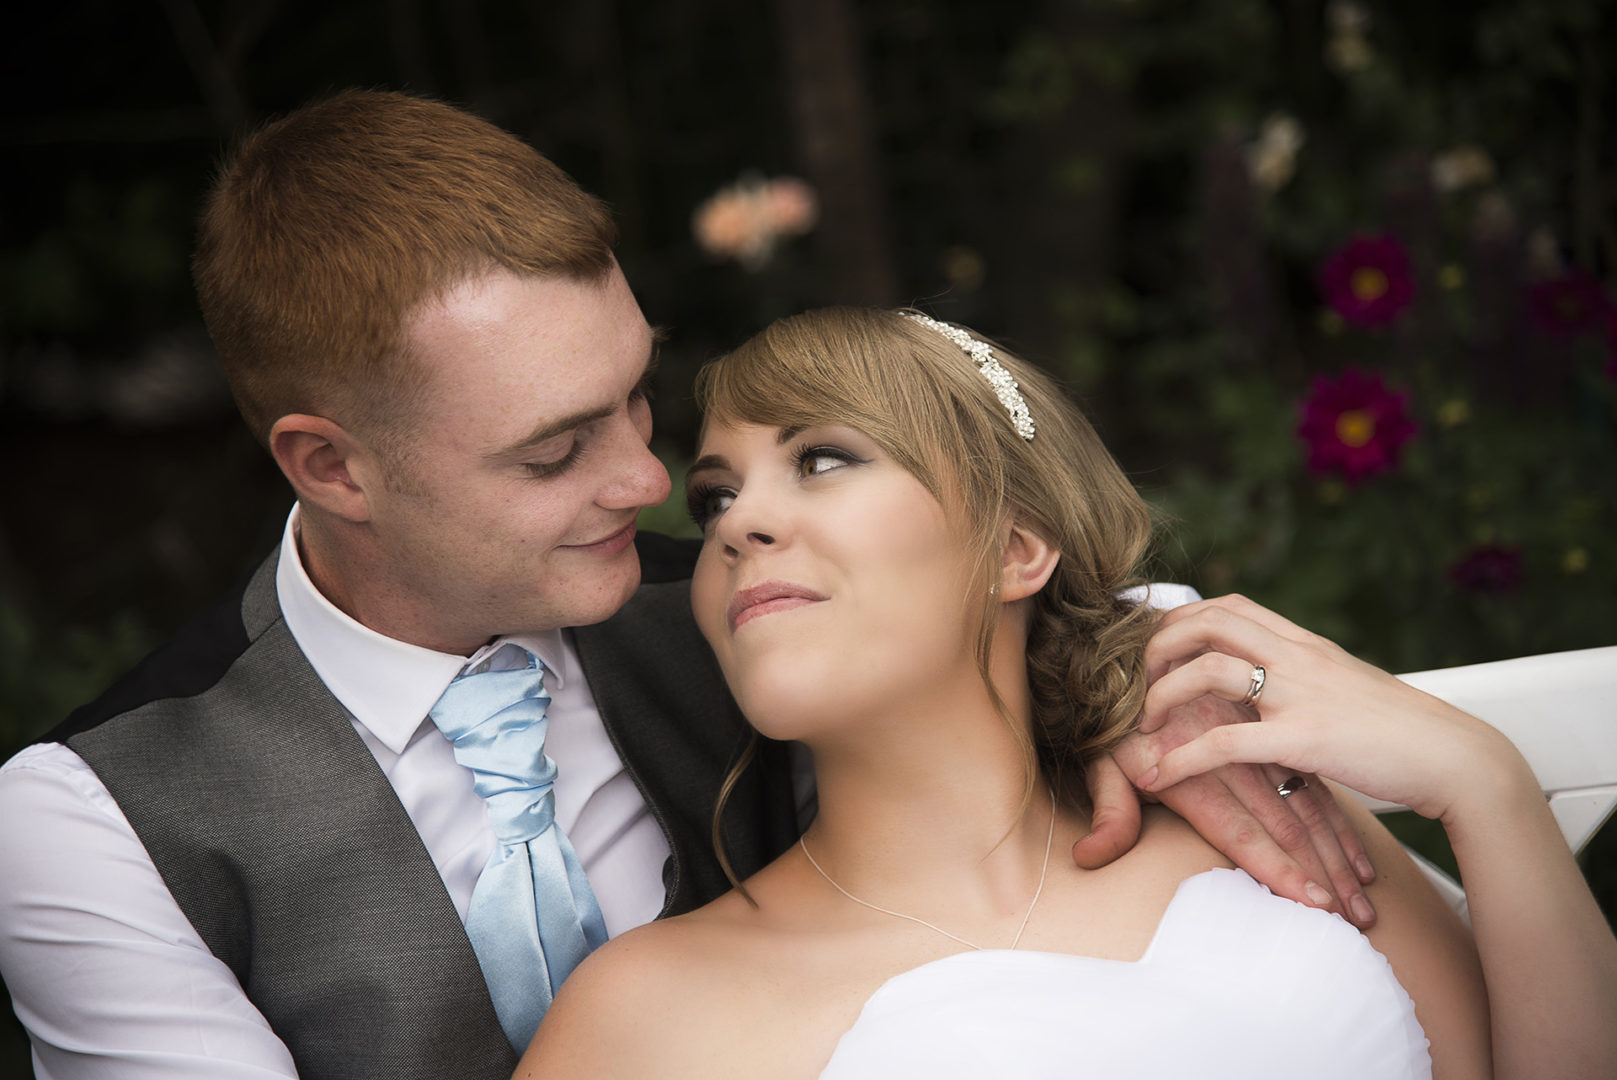 Nuneaton wedding photography by AJTImages at The Chestnuts Club